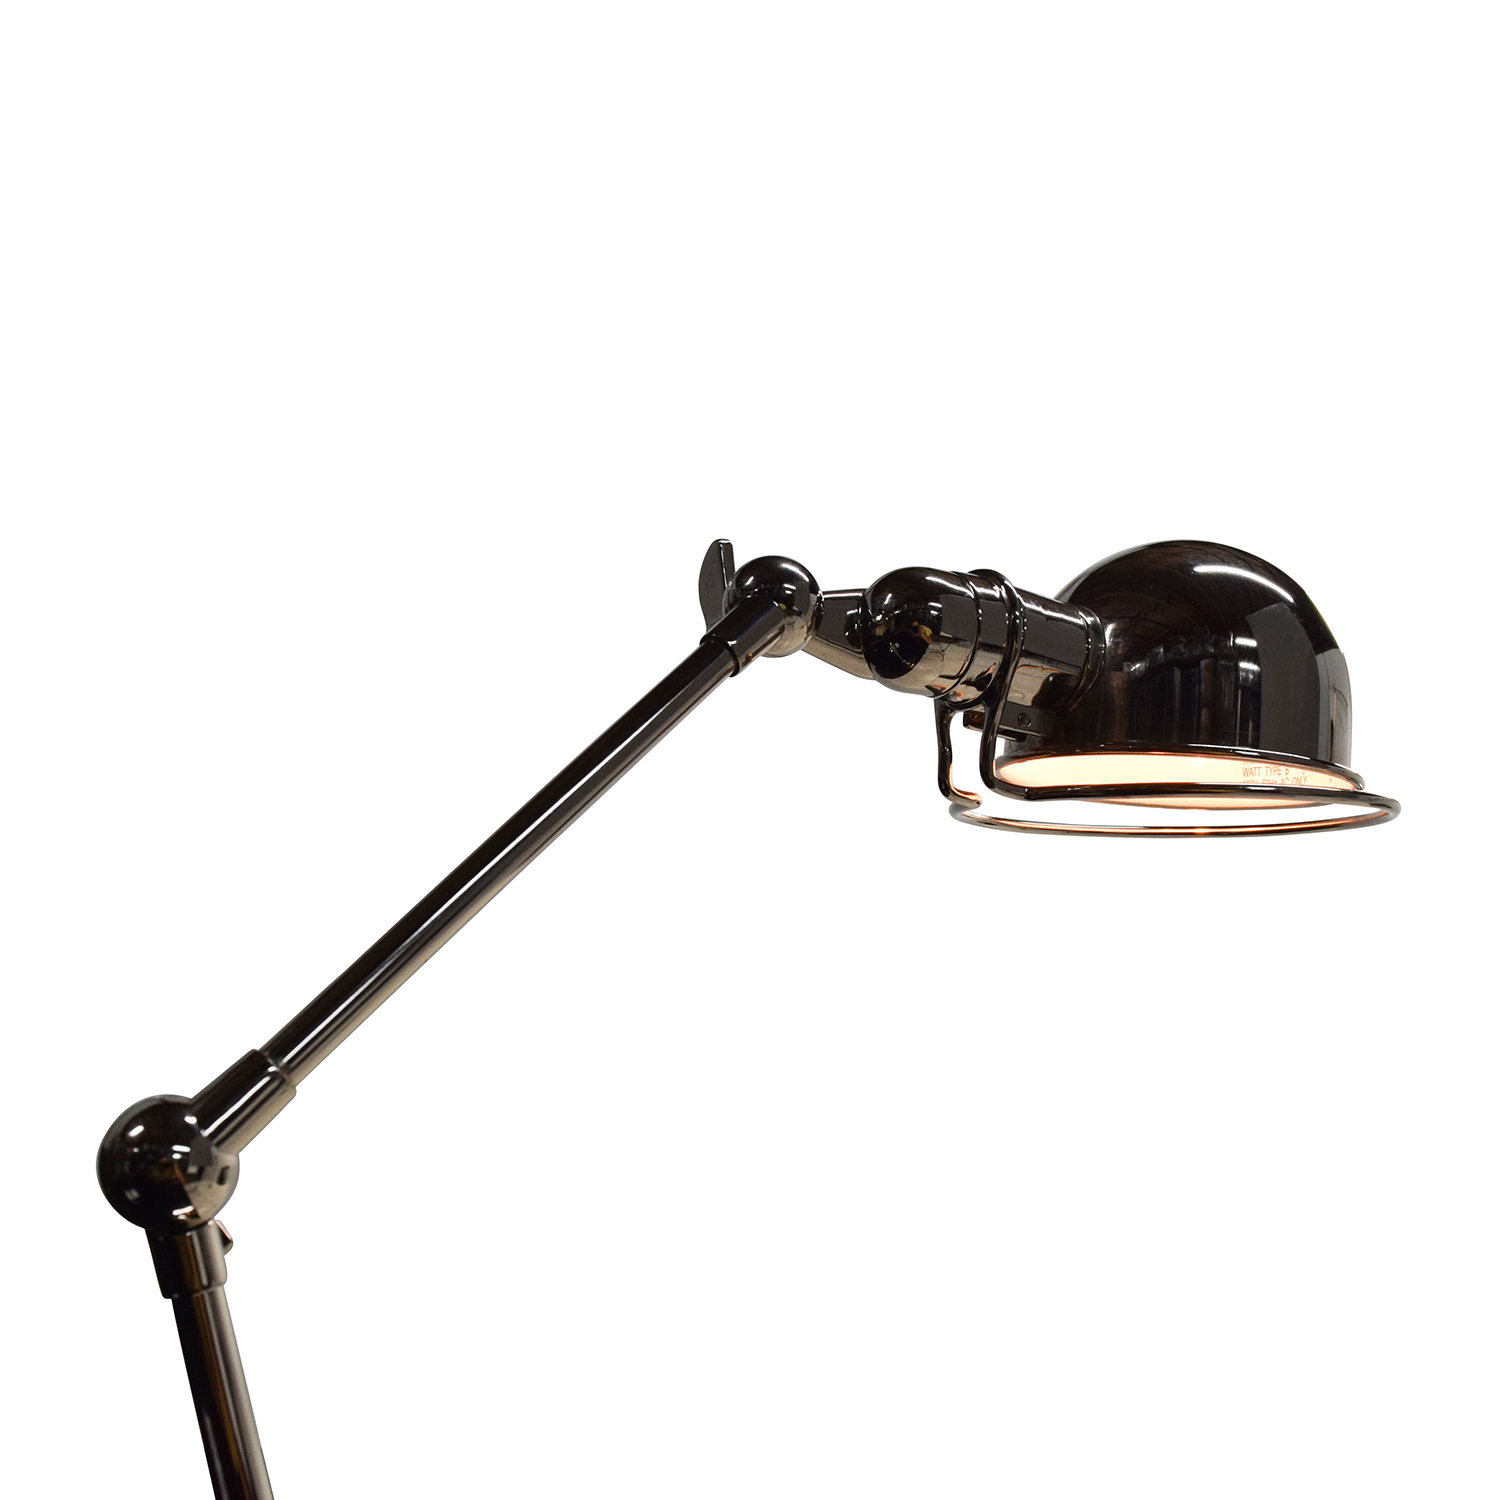 Restoration Hardware Restoration Hardware Atelier Task Table Lamp on sale